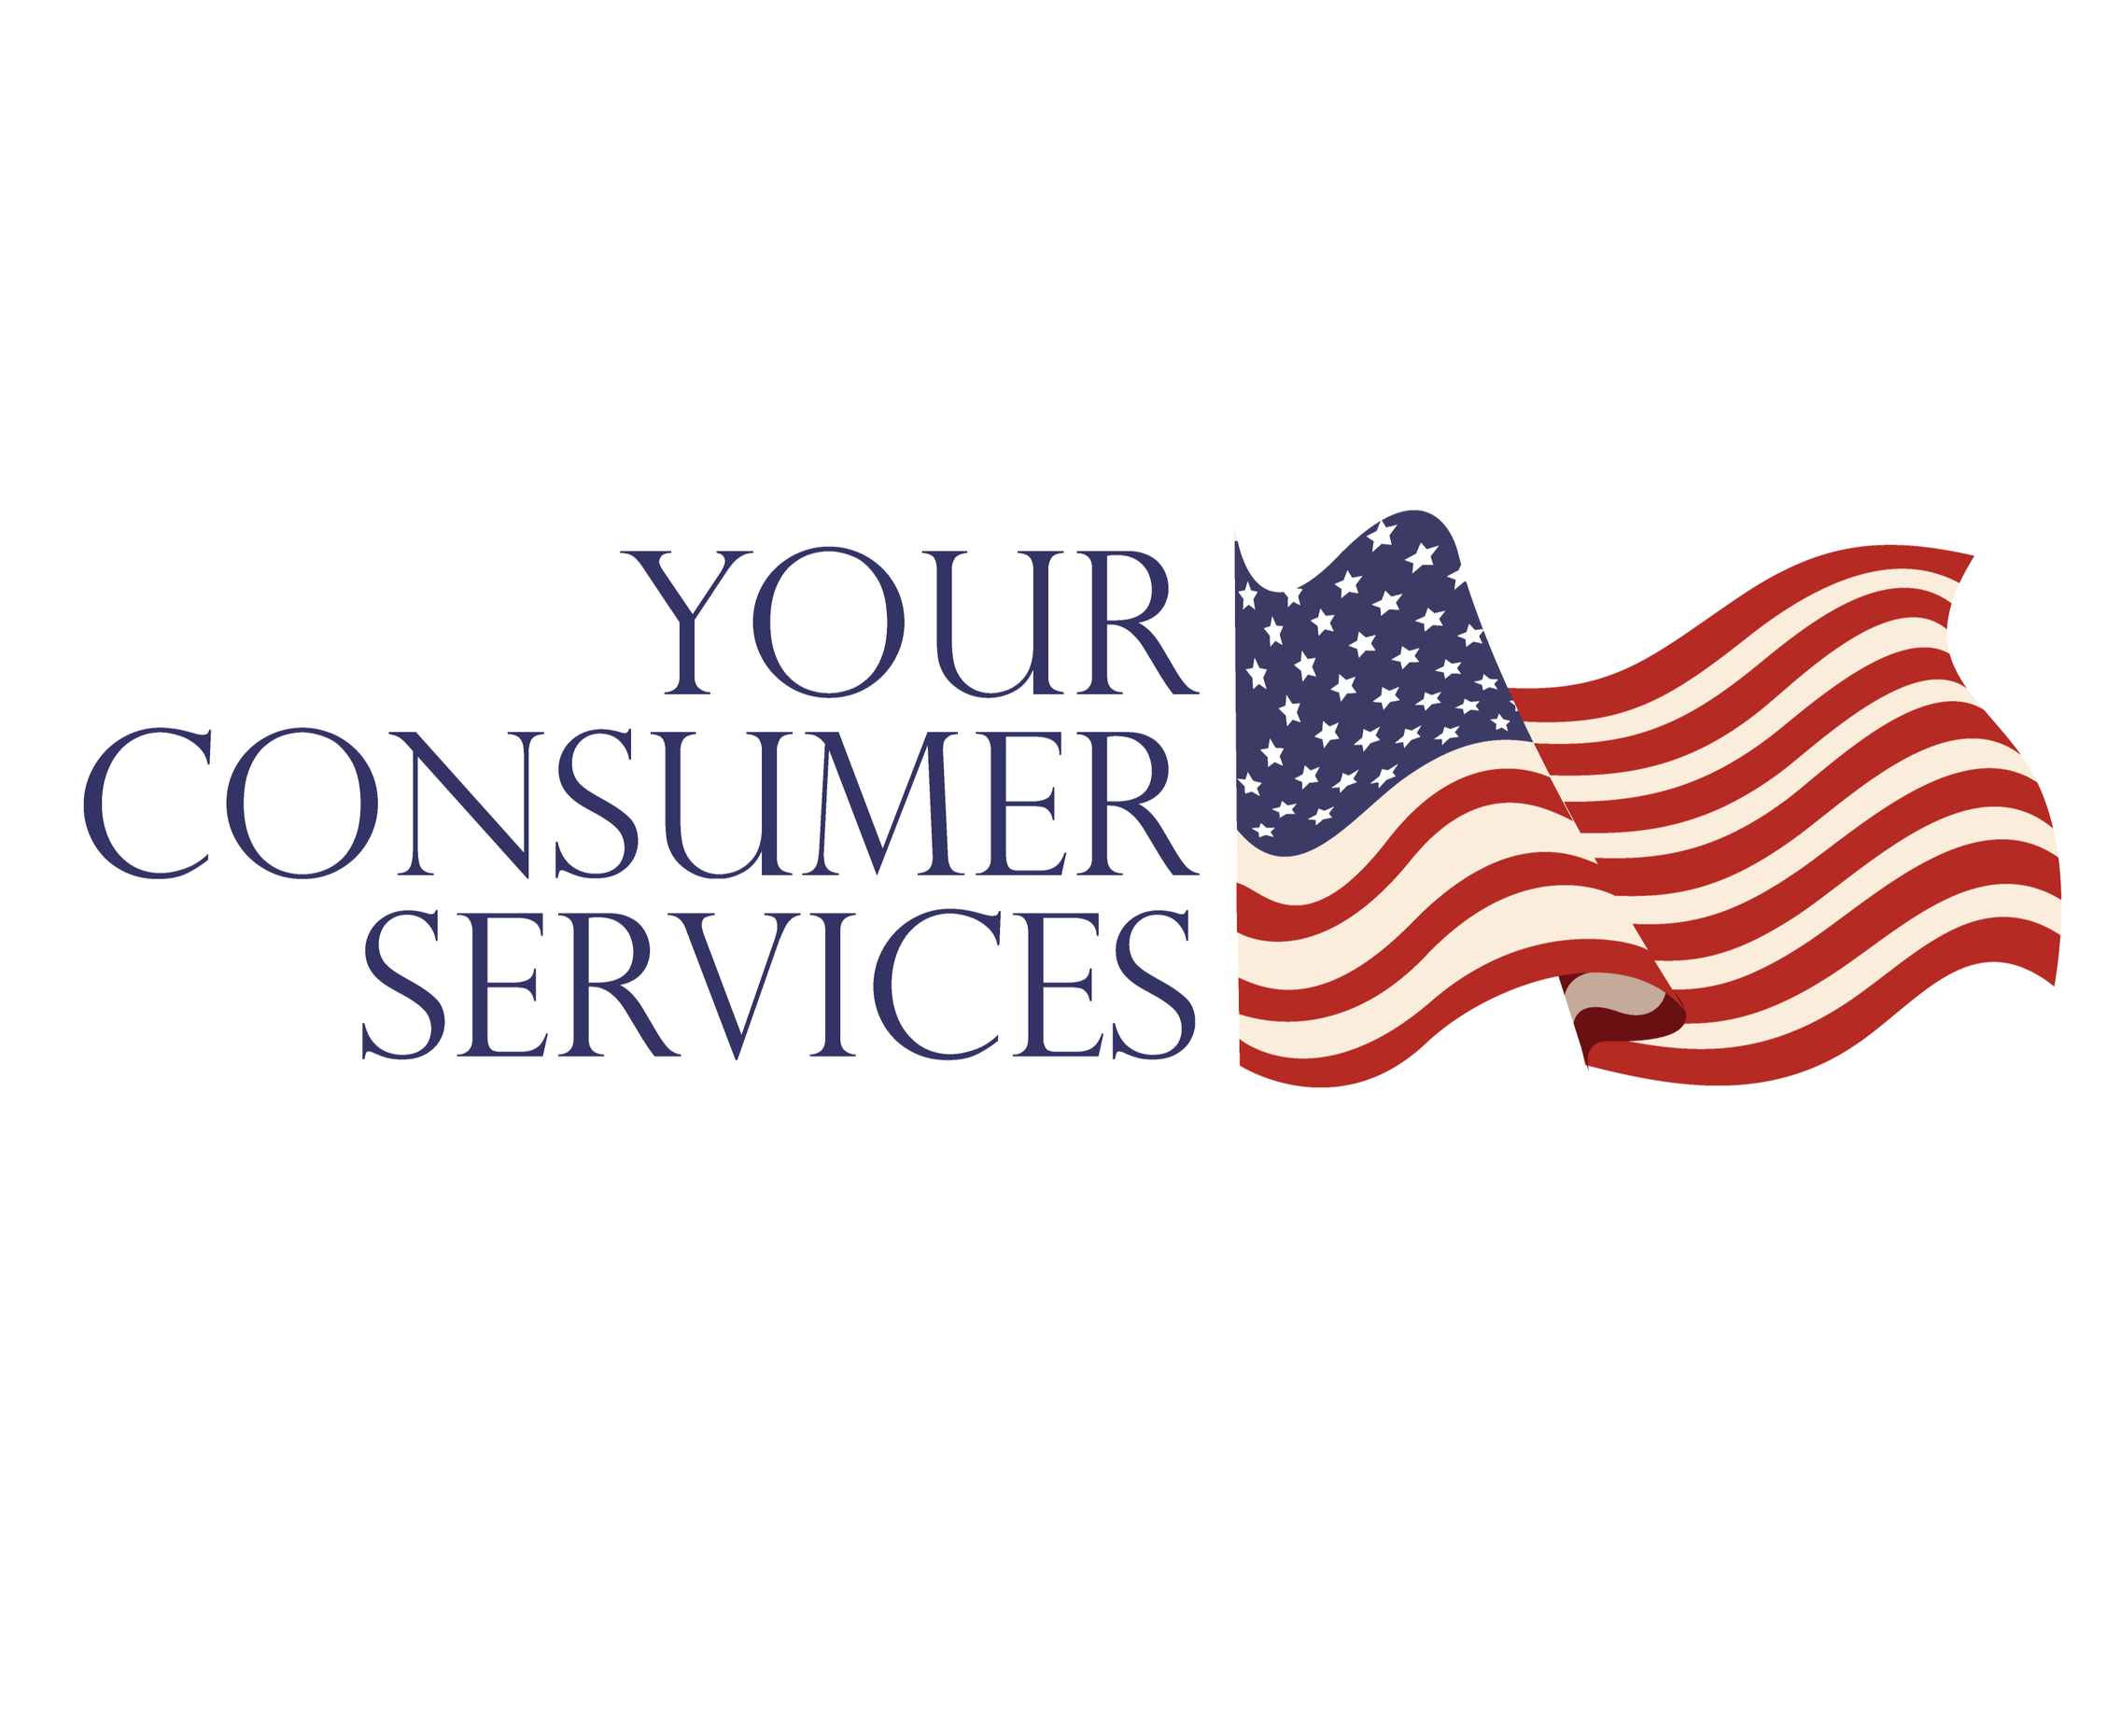 Your Consumer Services